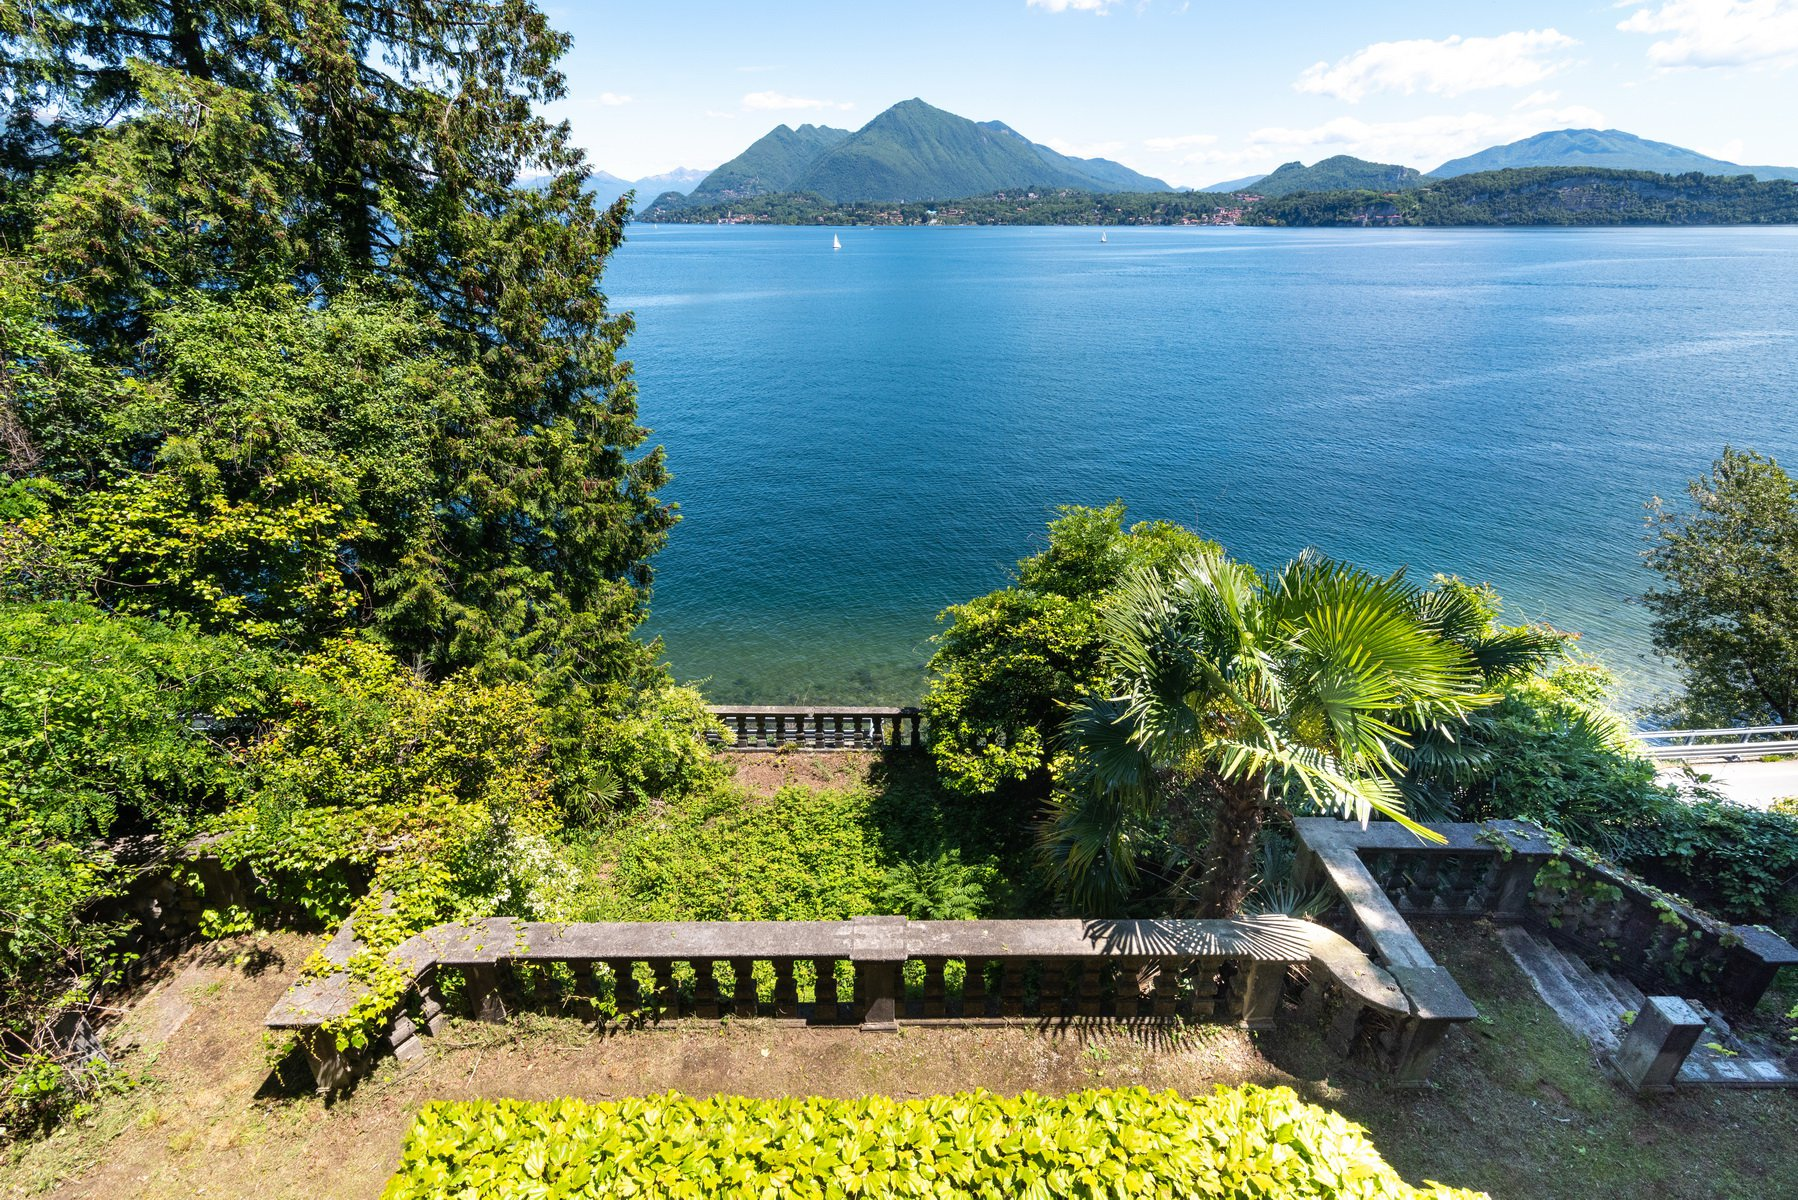 Castle for sale in Stresa on Lake Maggiore - Lake Maggiore